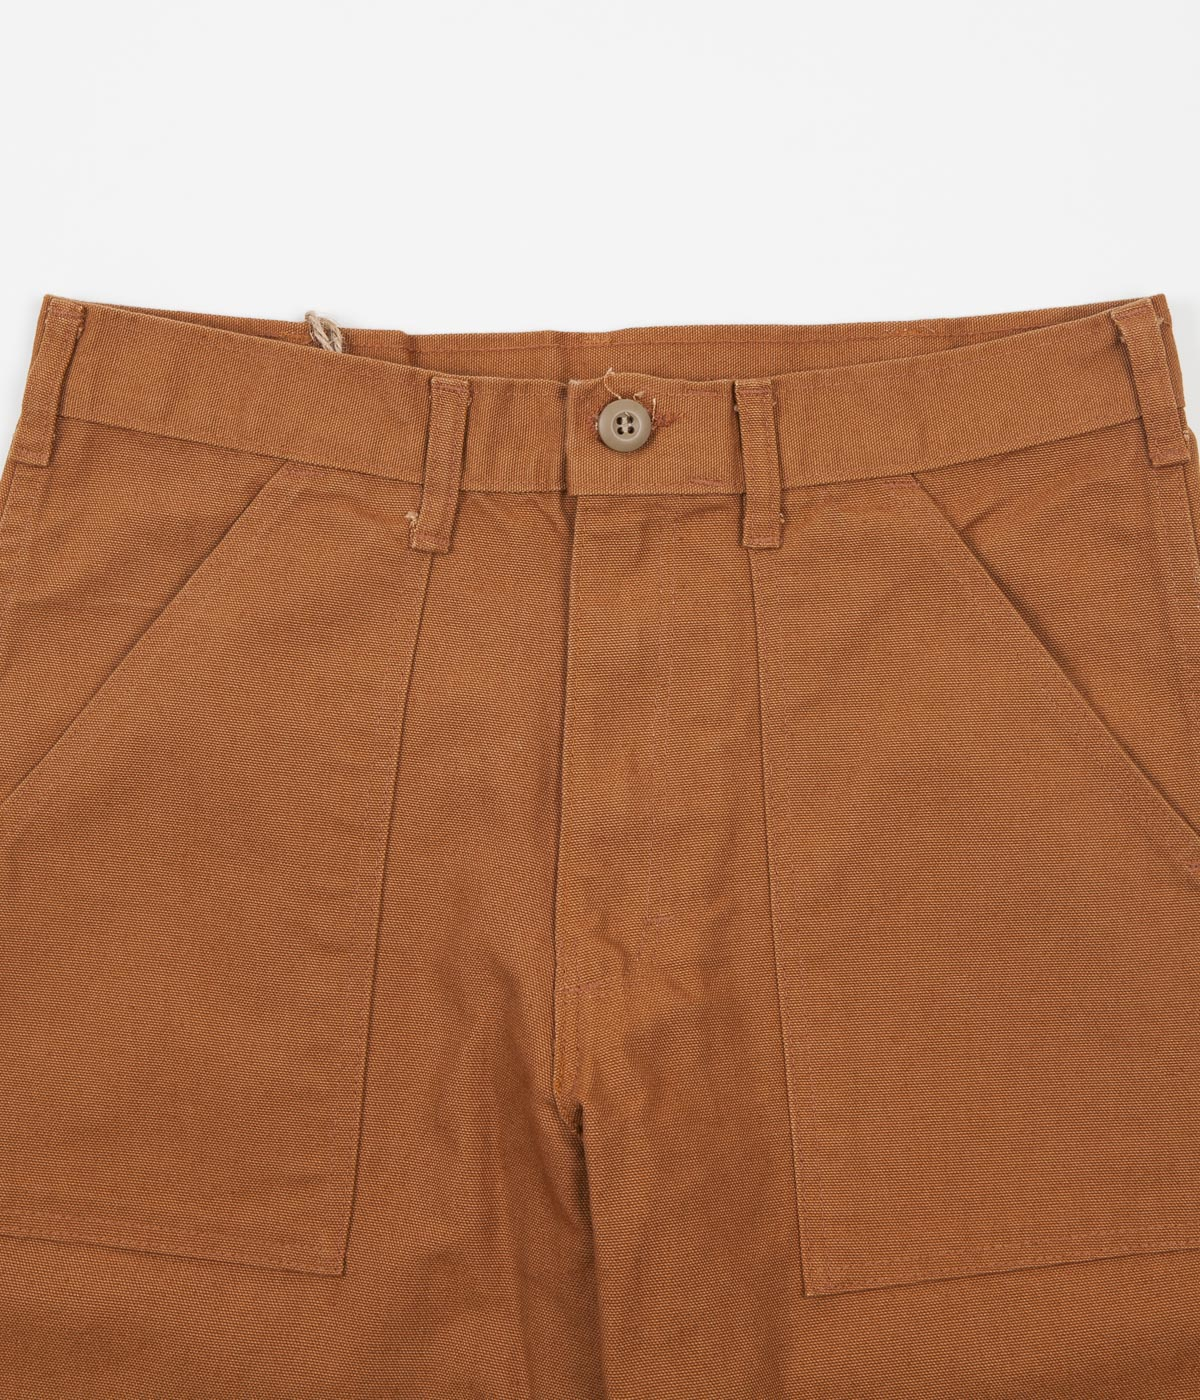 Stan Ray Slim Fit 4 Pocket Fatigue Trousers - Brown Duck